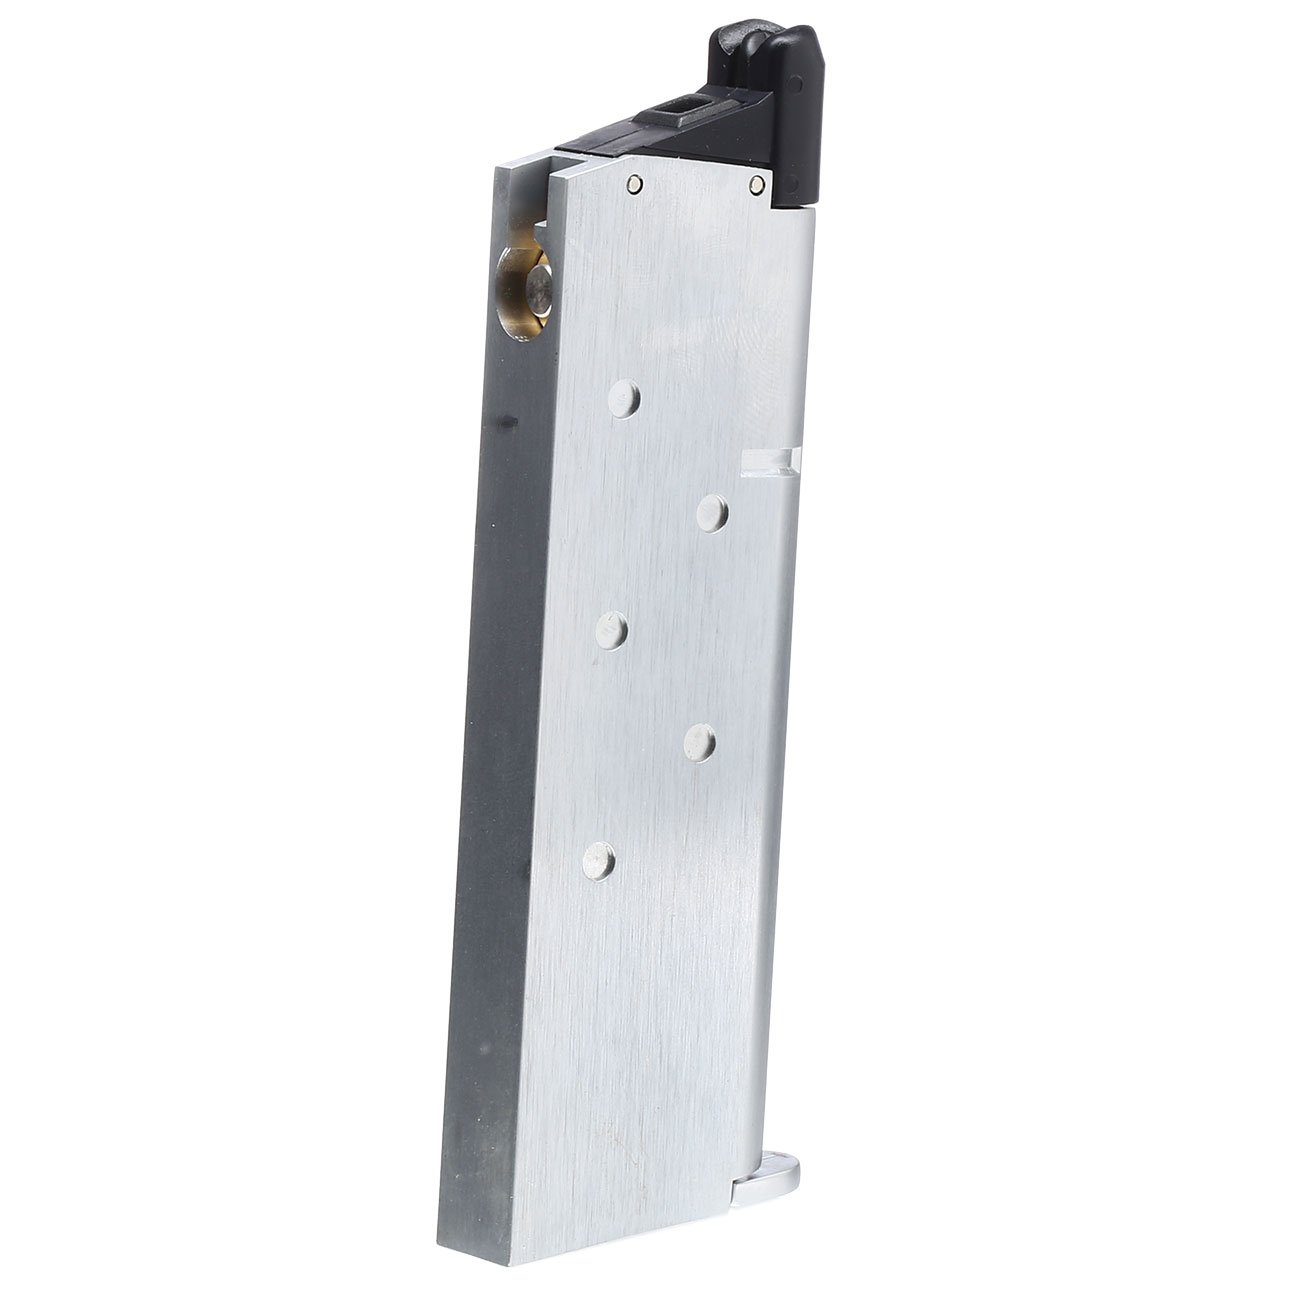 King Arms M1911 GBB Magazin 20 Schuss (Army-Type) silber 1